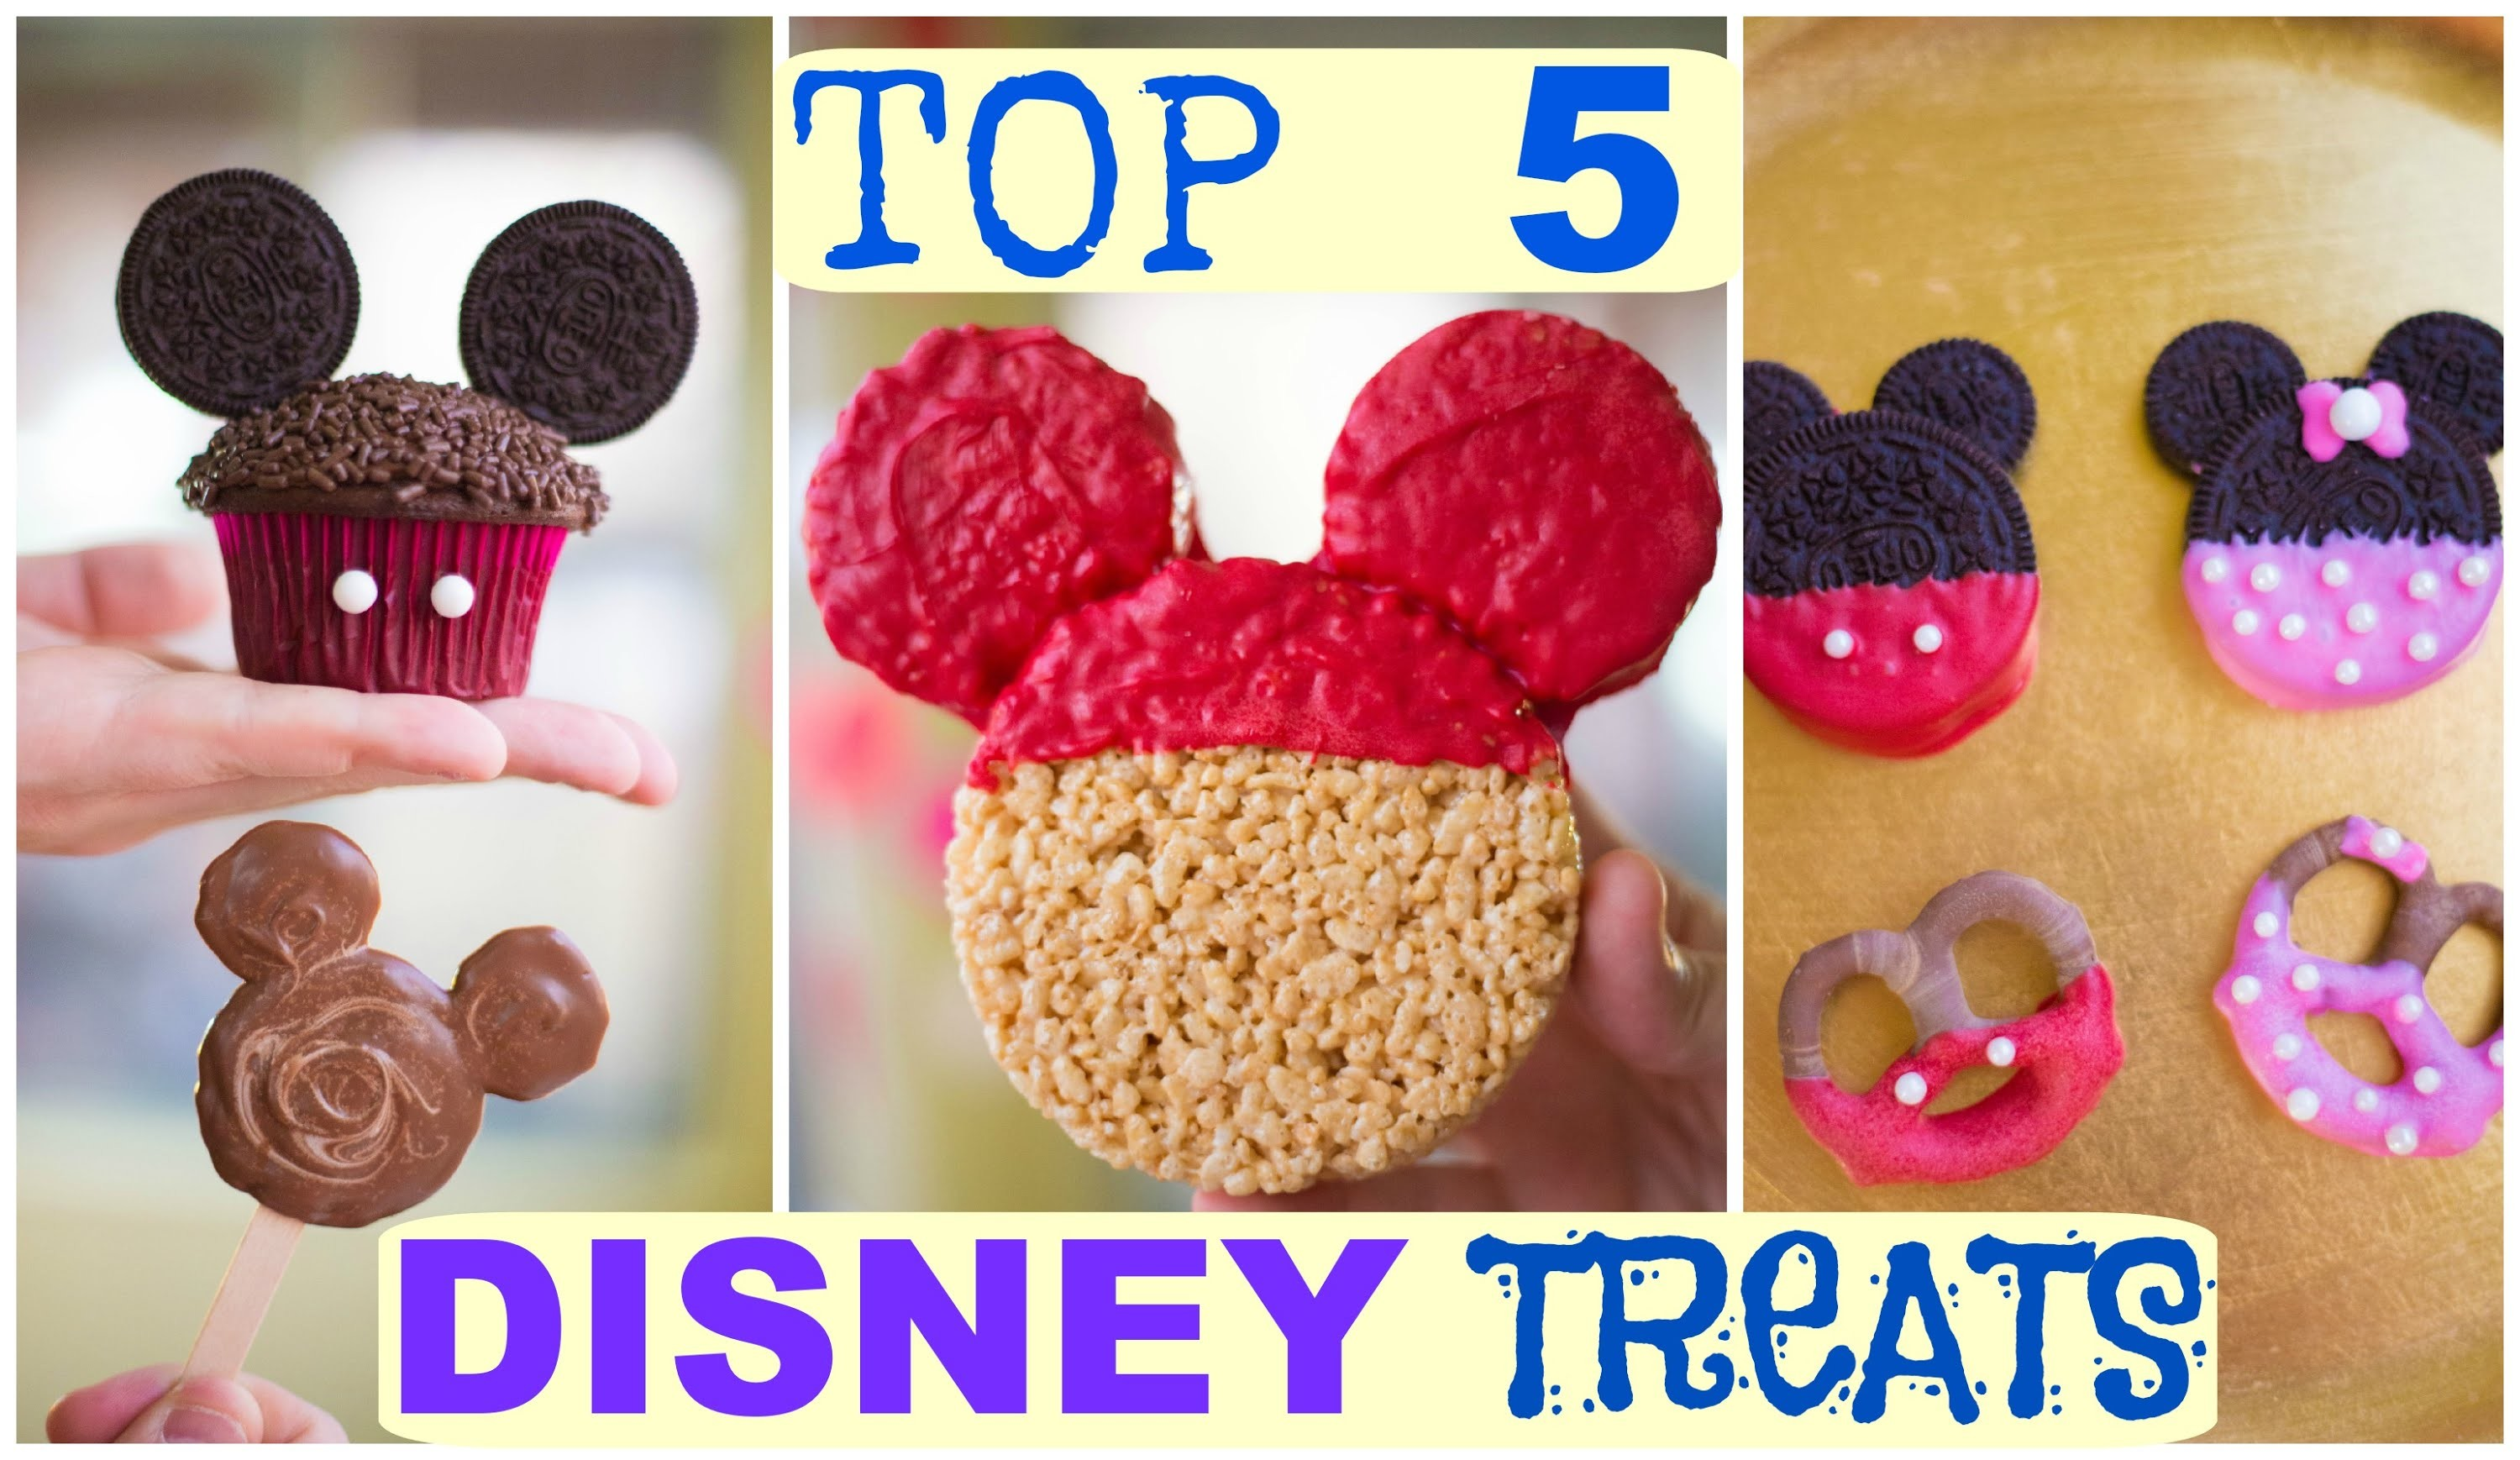 Top 5 Disney Treat Ideas! Mickey and Minnie Mouse!